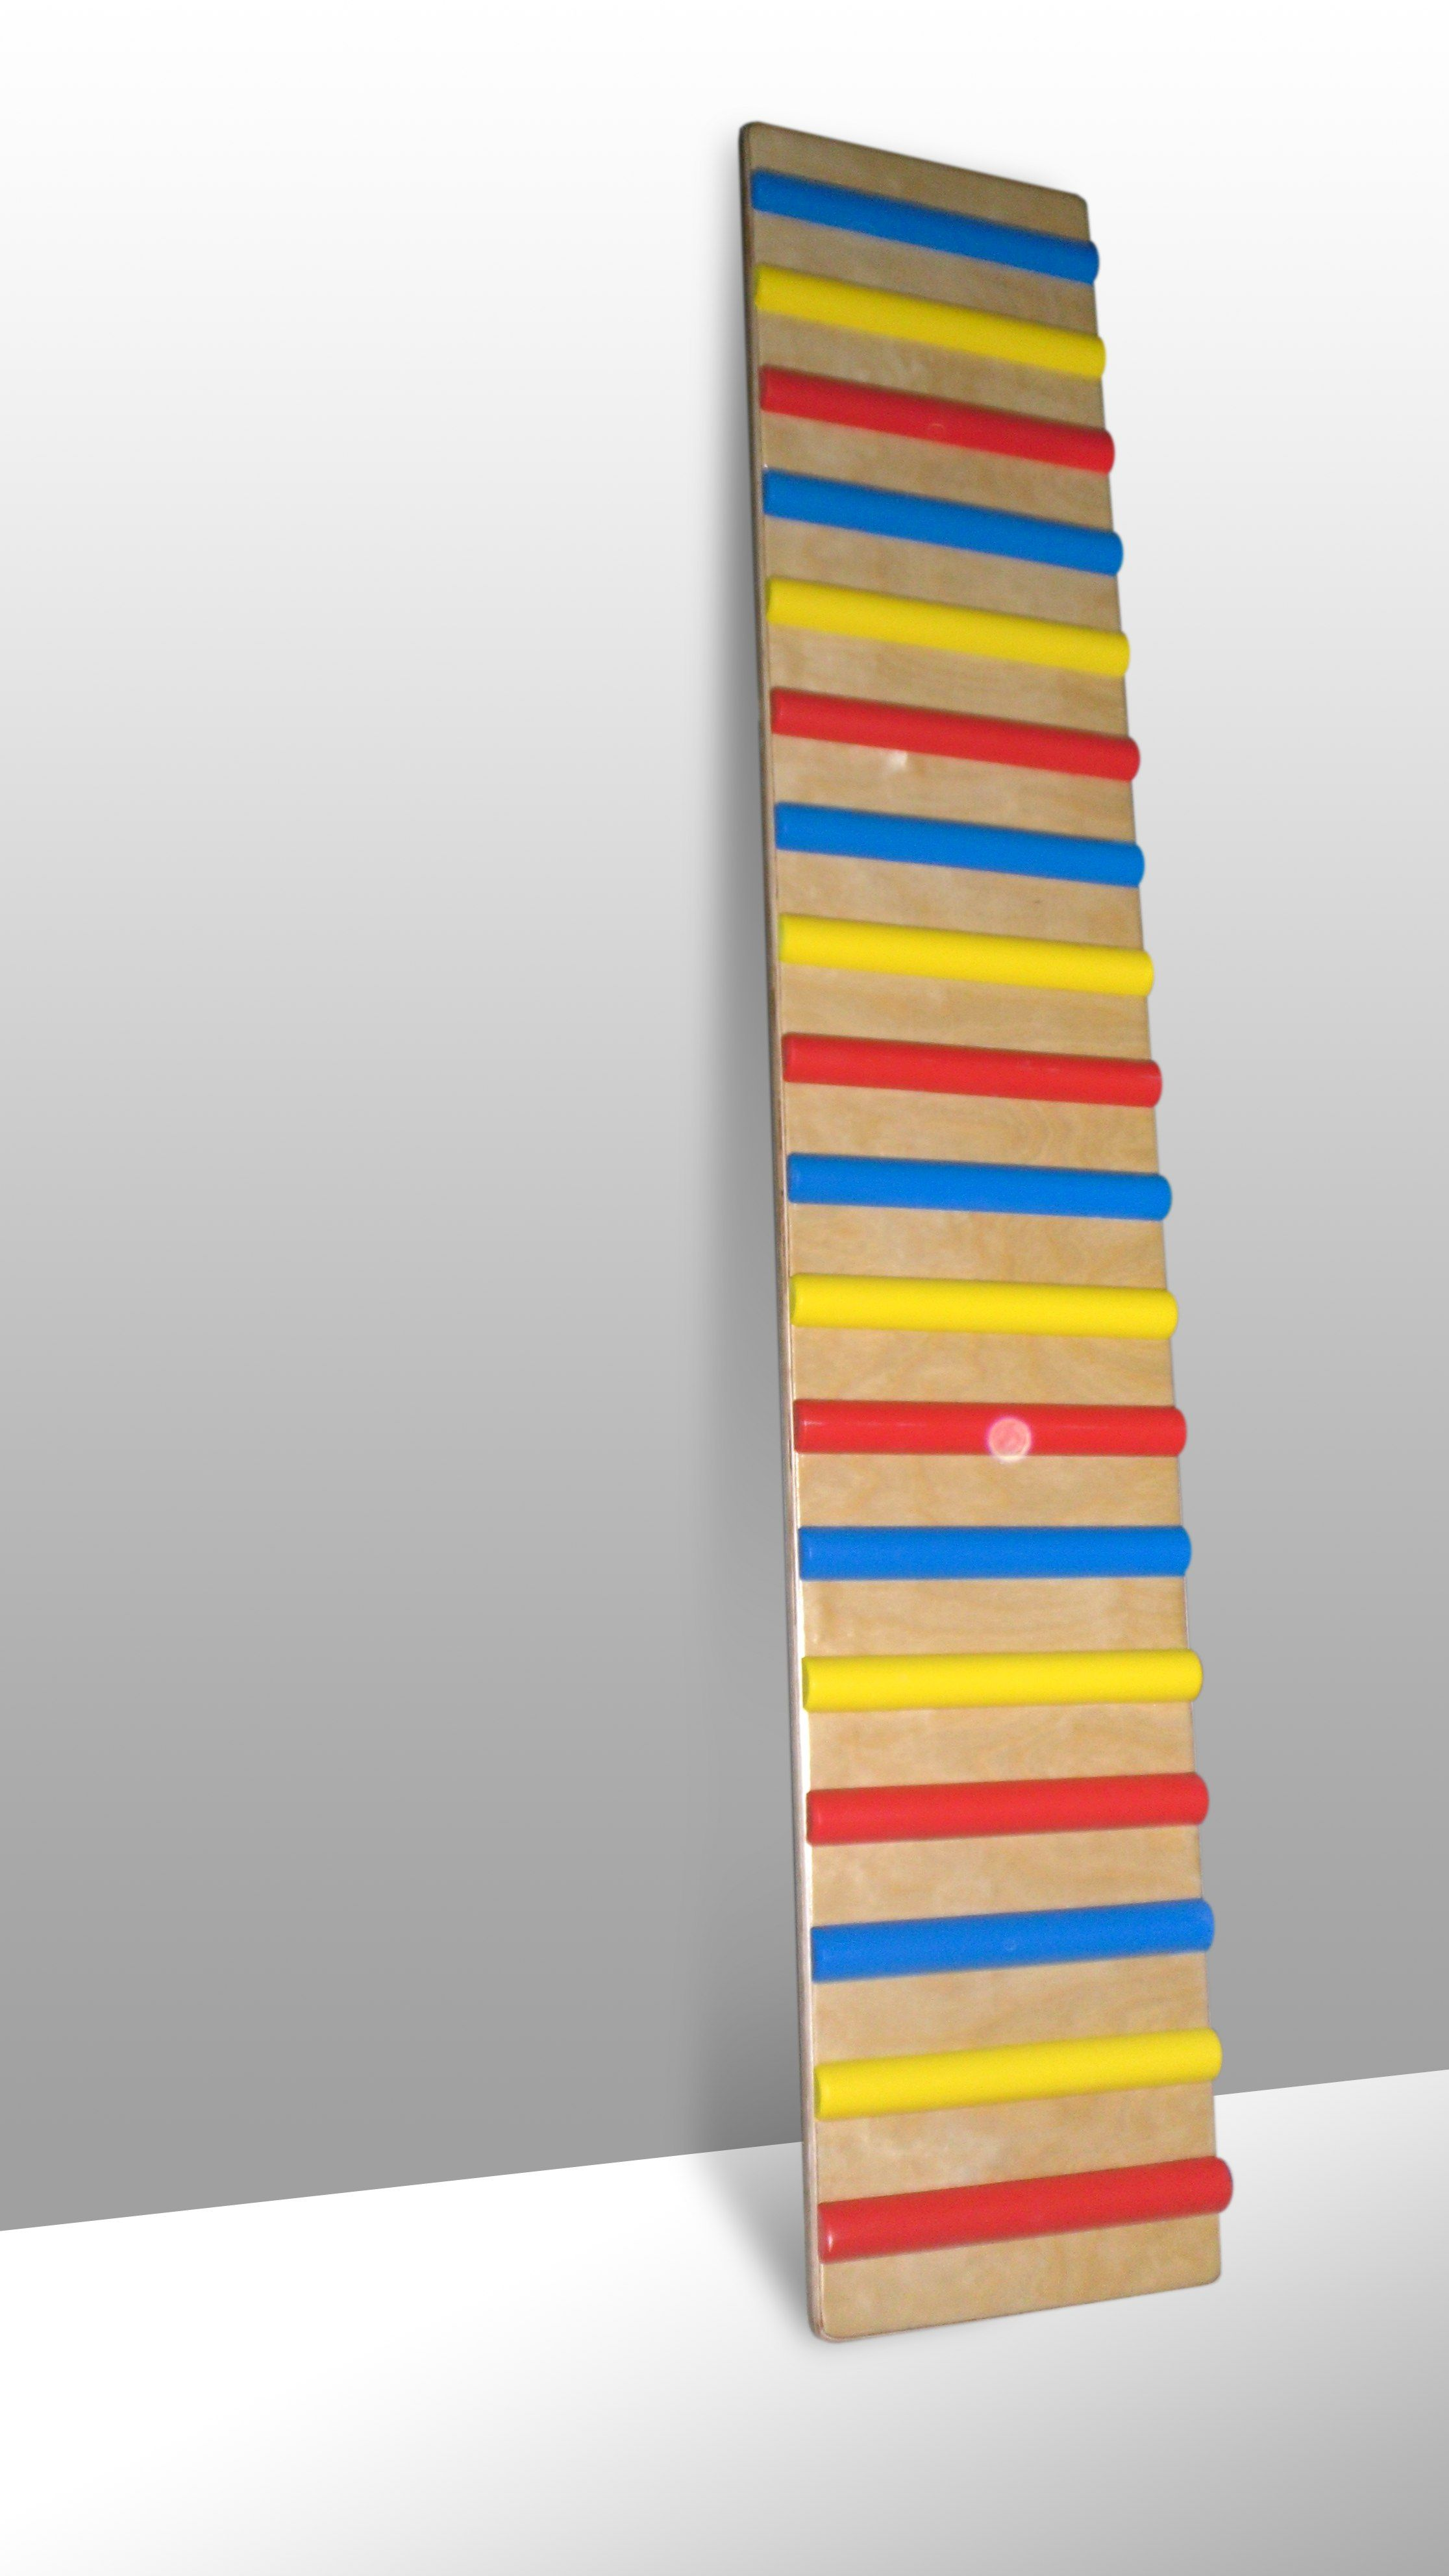 FSI Analytica / Inclined ribbed board 1.6x0.3m with colored strips (17pcs)